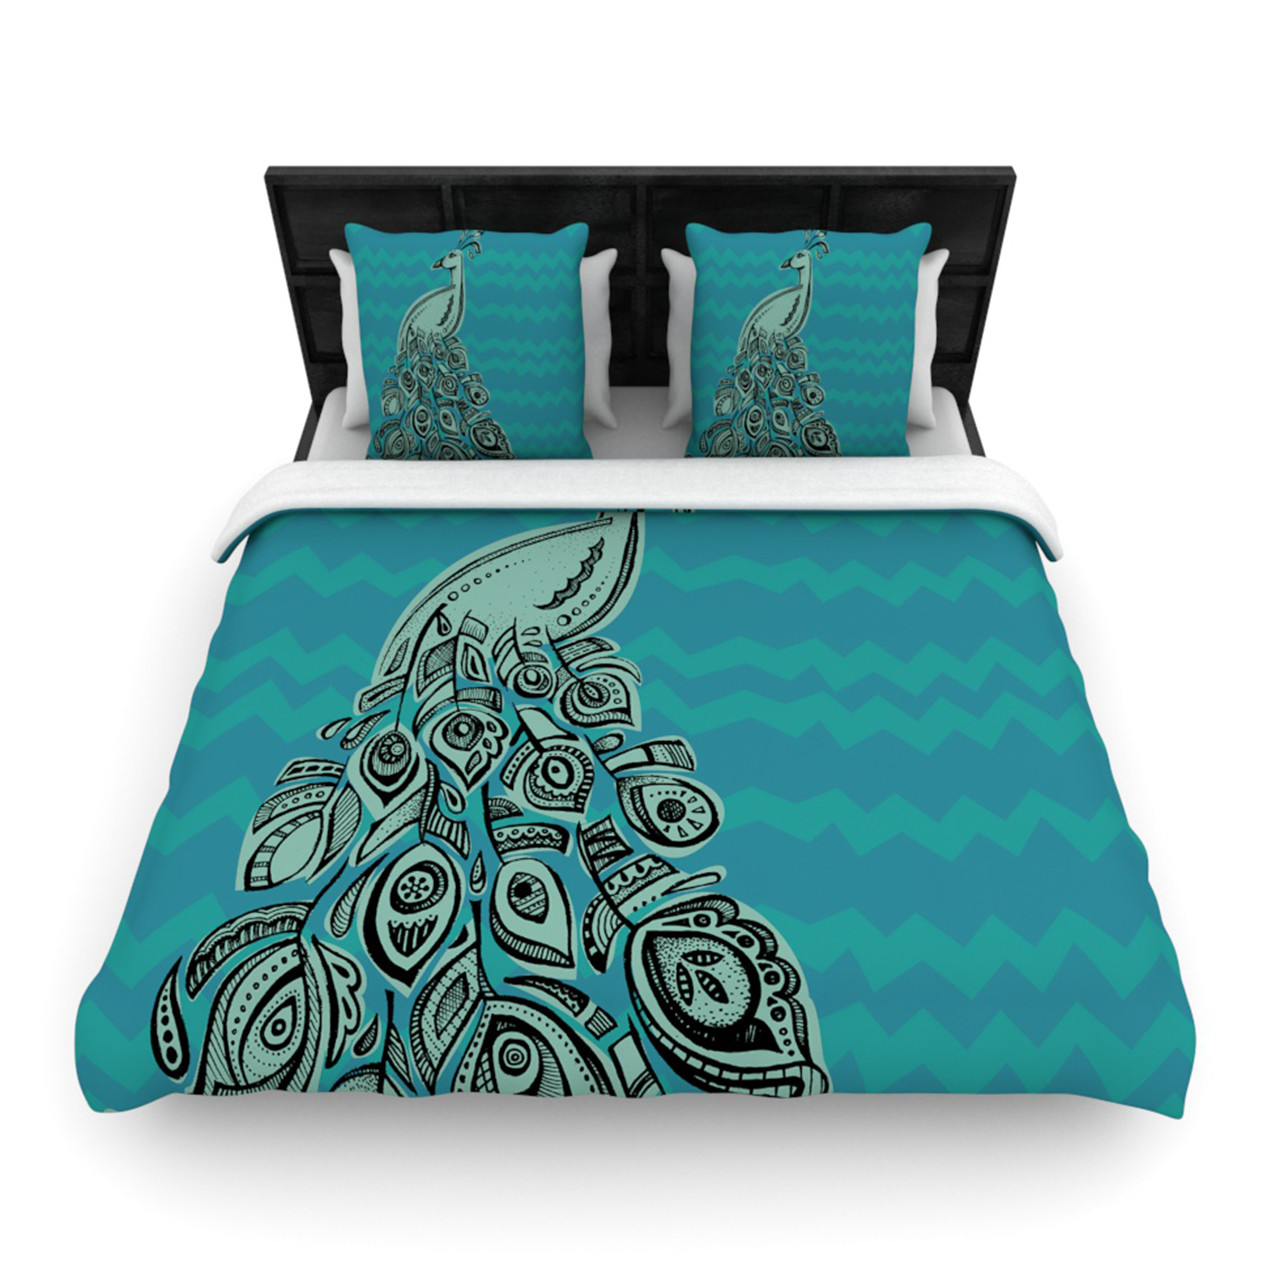 Peacock Bed Sets | Peacock Bedding | Purple Peacock Bedding